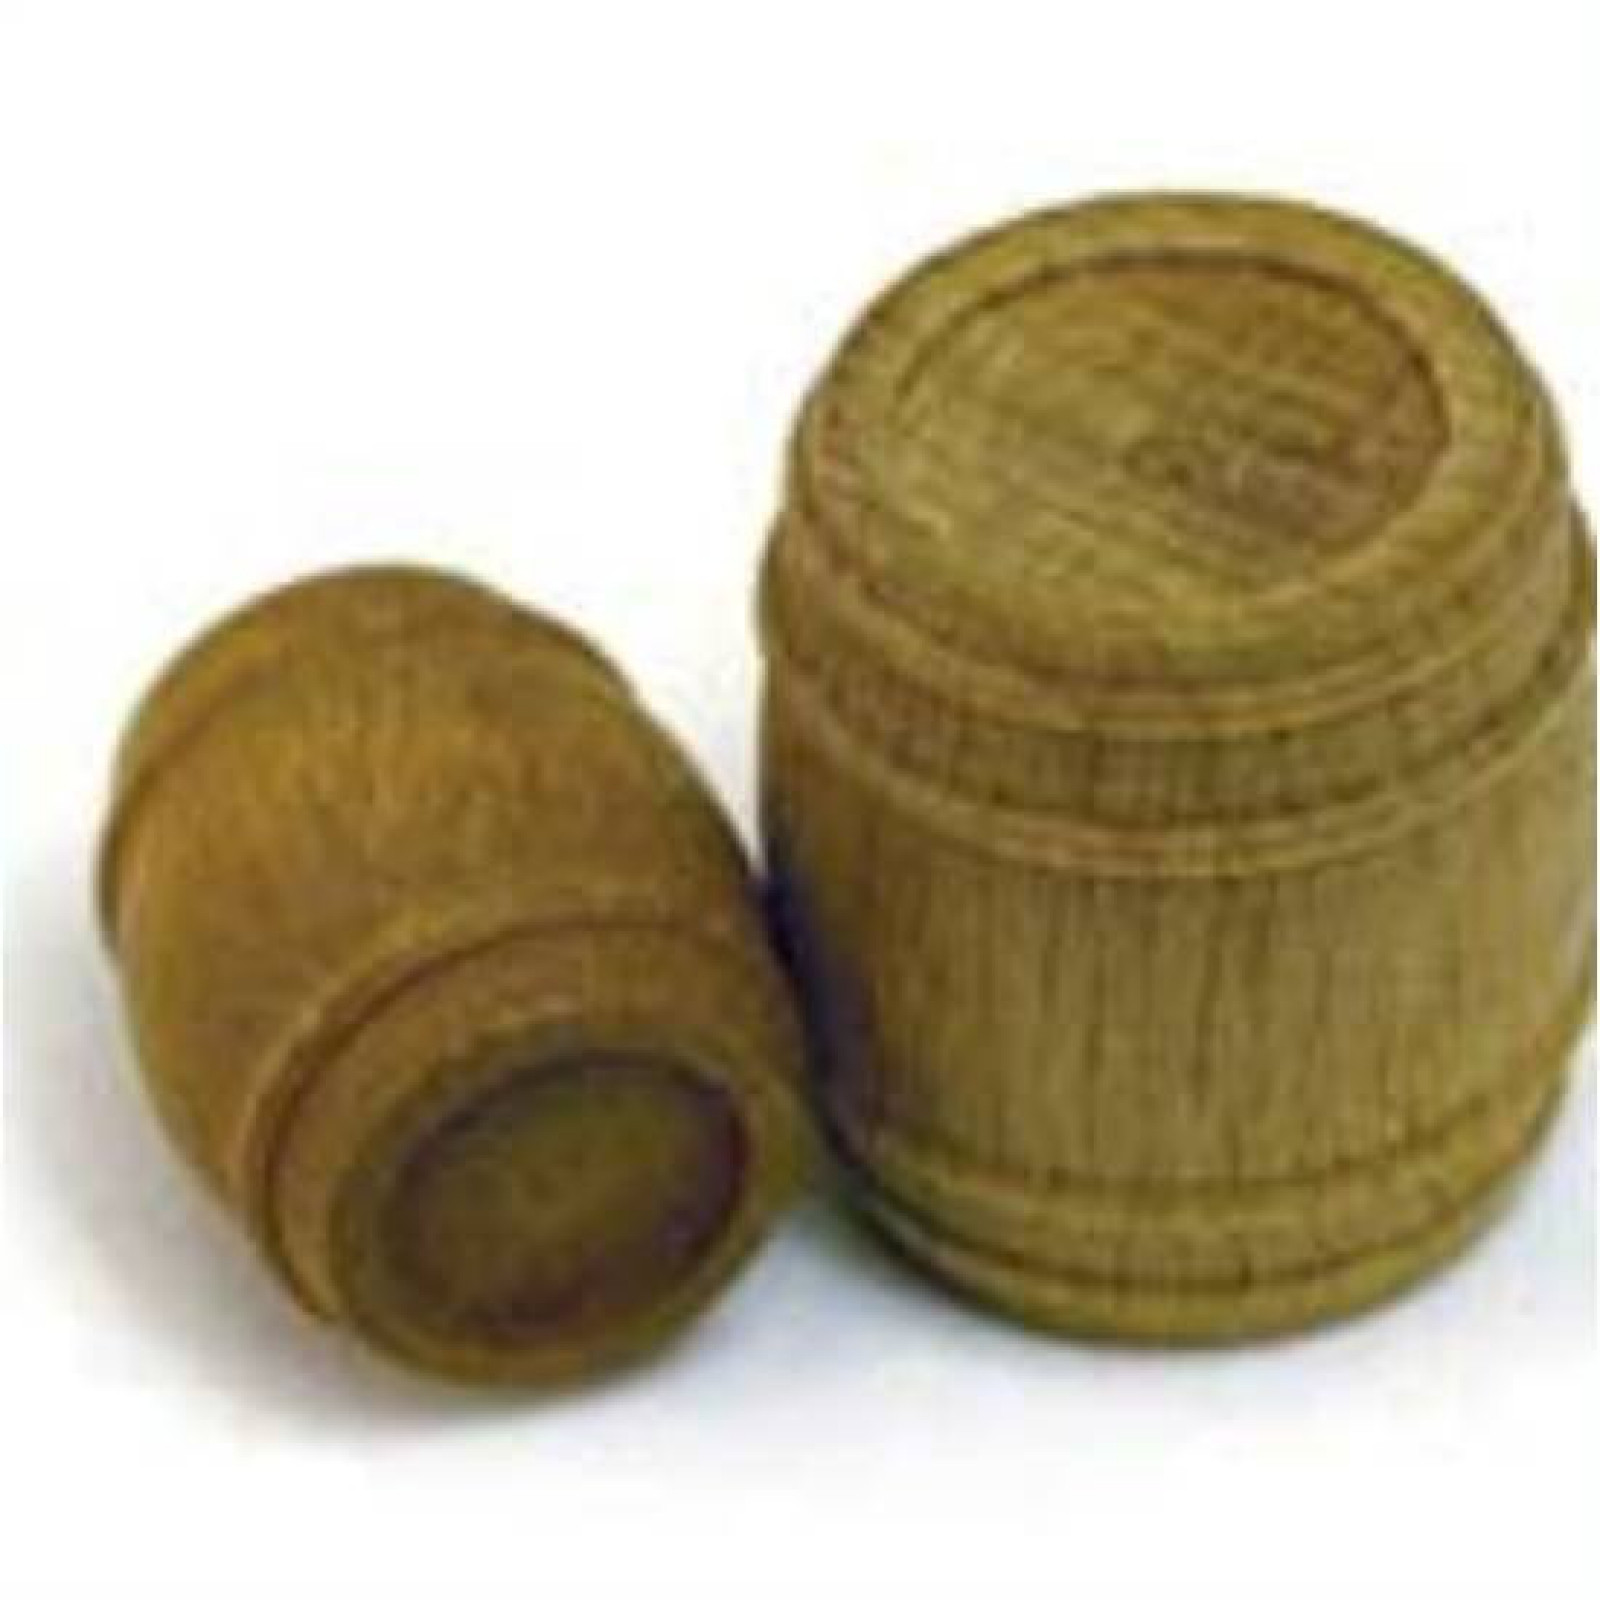 PRE-CARVED WALNUT BARRELS 21x30MM 4PCS.